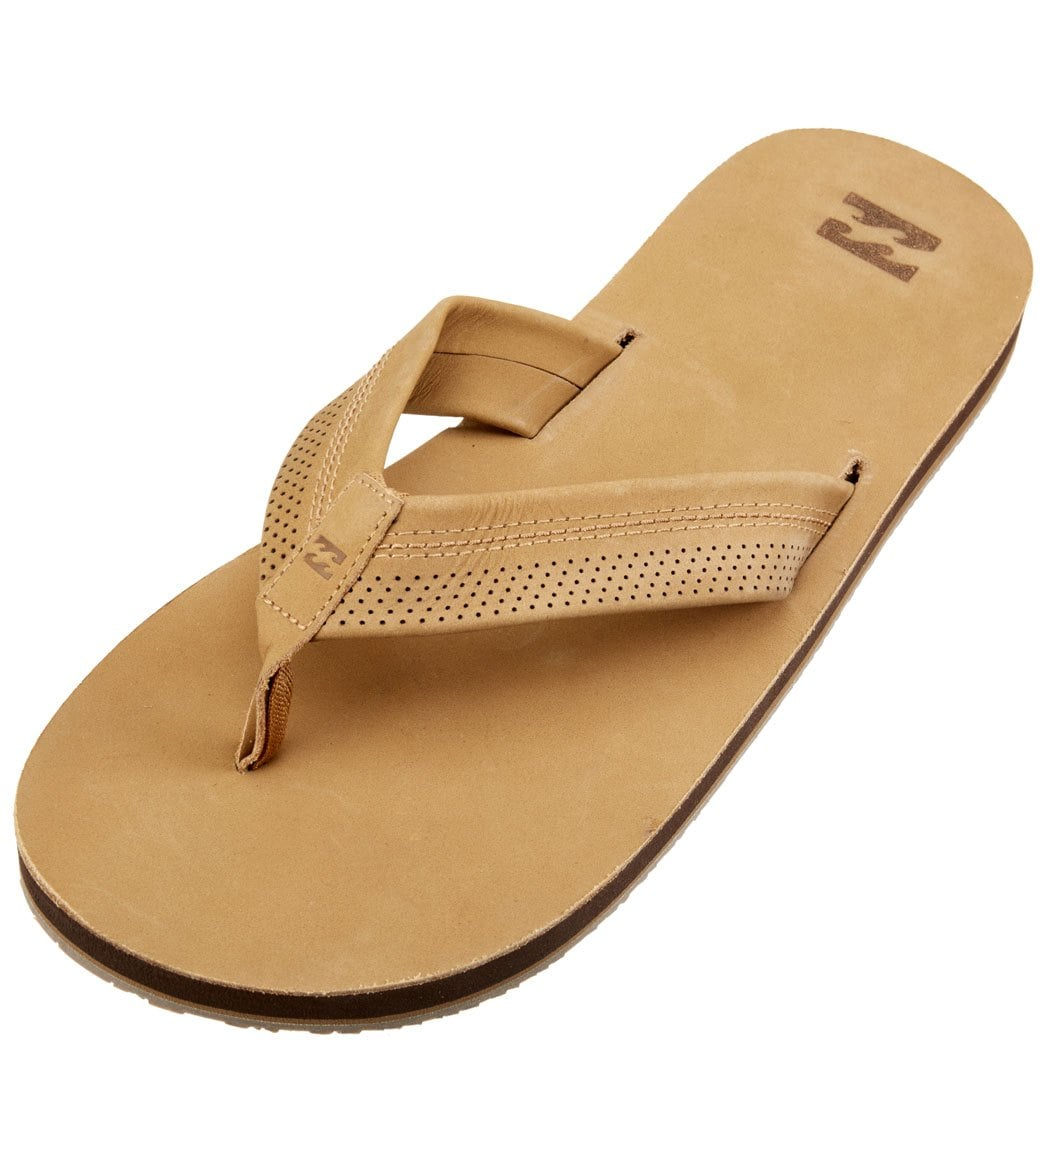 50fbc7fb78e9 Billabong Men s All Day Leather Sandal at SwimOutlet.com - Free Shipping